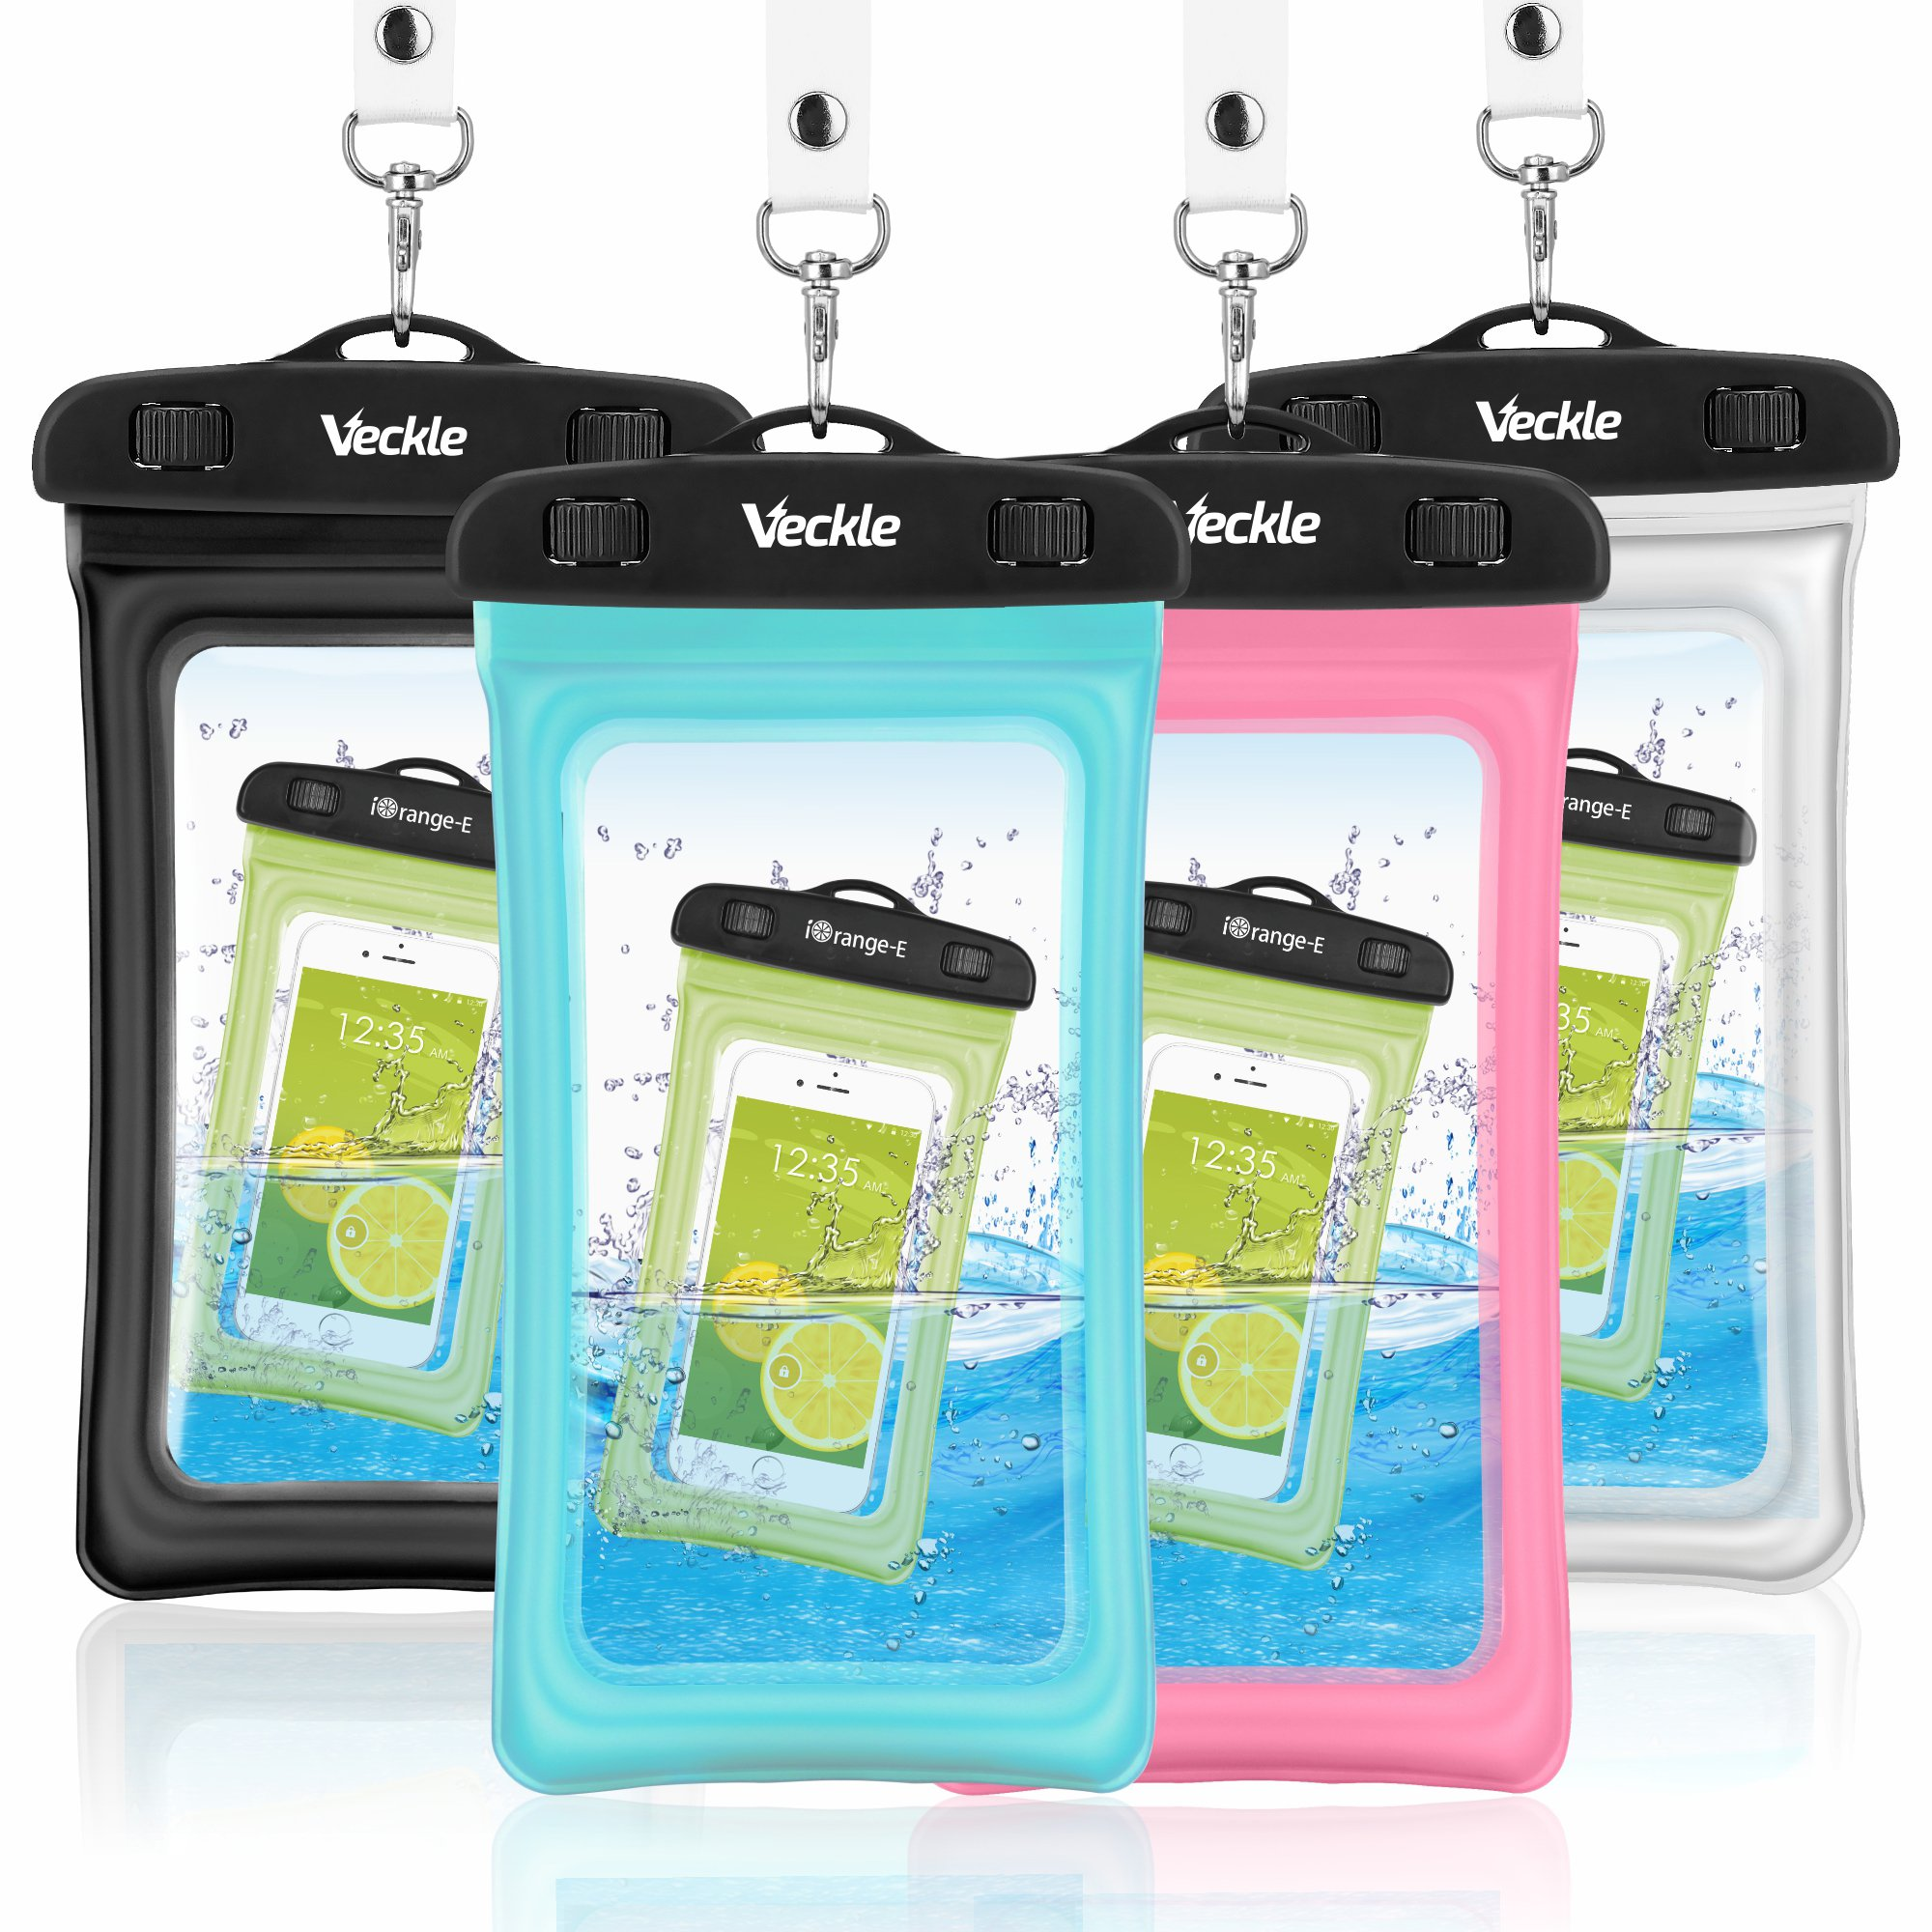 Veckle Waterproof Case, 4 Pack Floating Waterproof Cell Phone Pouch Universal TPU Clear Water Proof Dry Beach Bag for iPhone X 8 7 6S 6 Plus, Samsung Galaxy S9 S8 S7 S6, Note 5, Black White Blue Pink by Veckle